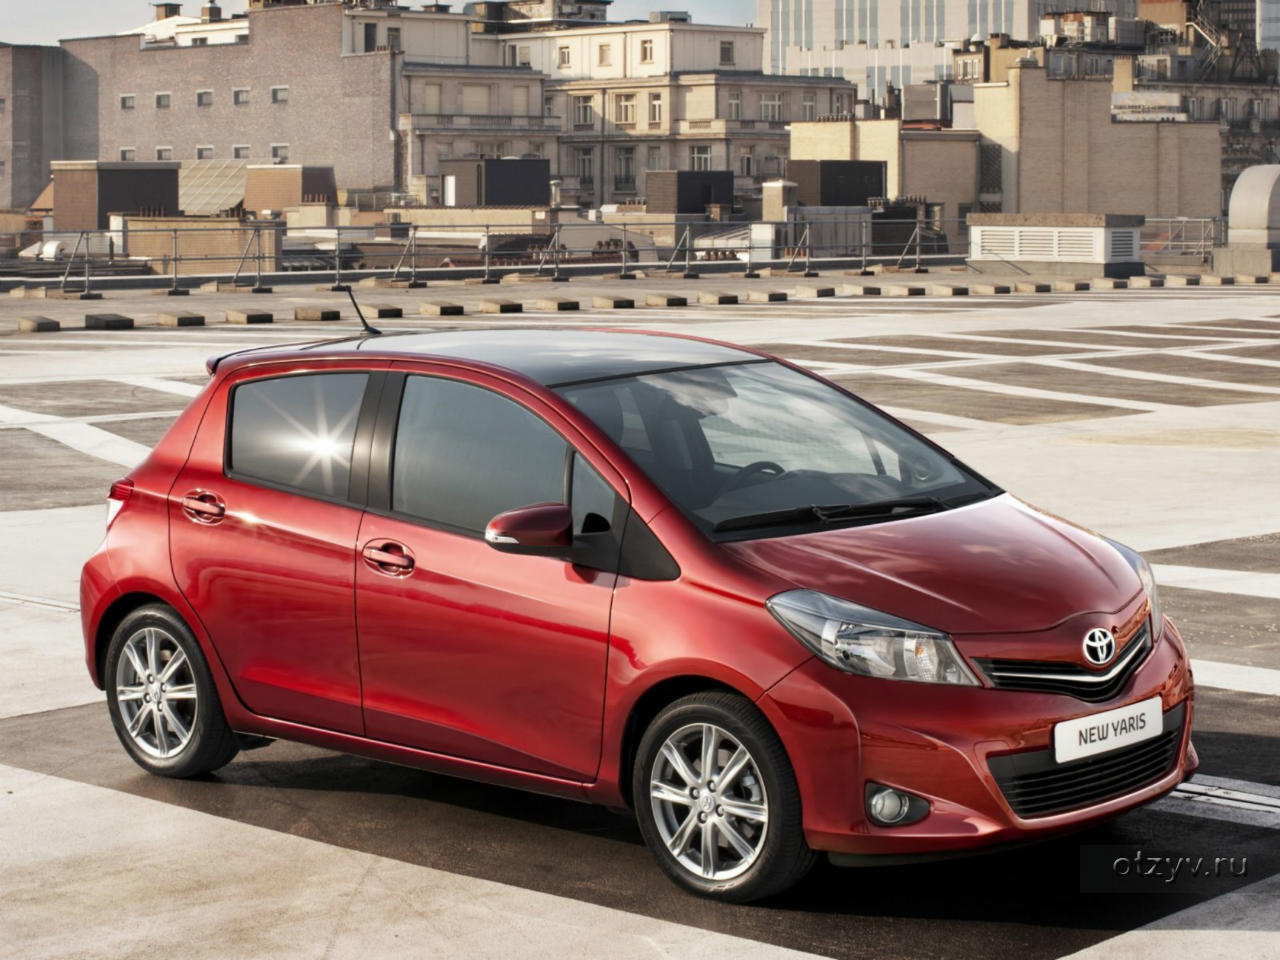 2012 Toyota Yaris - Toyota Official Site